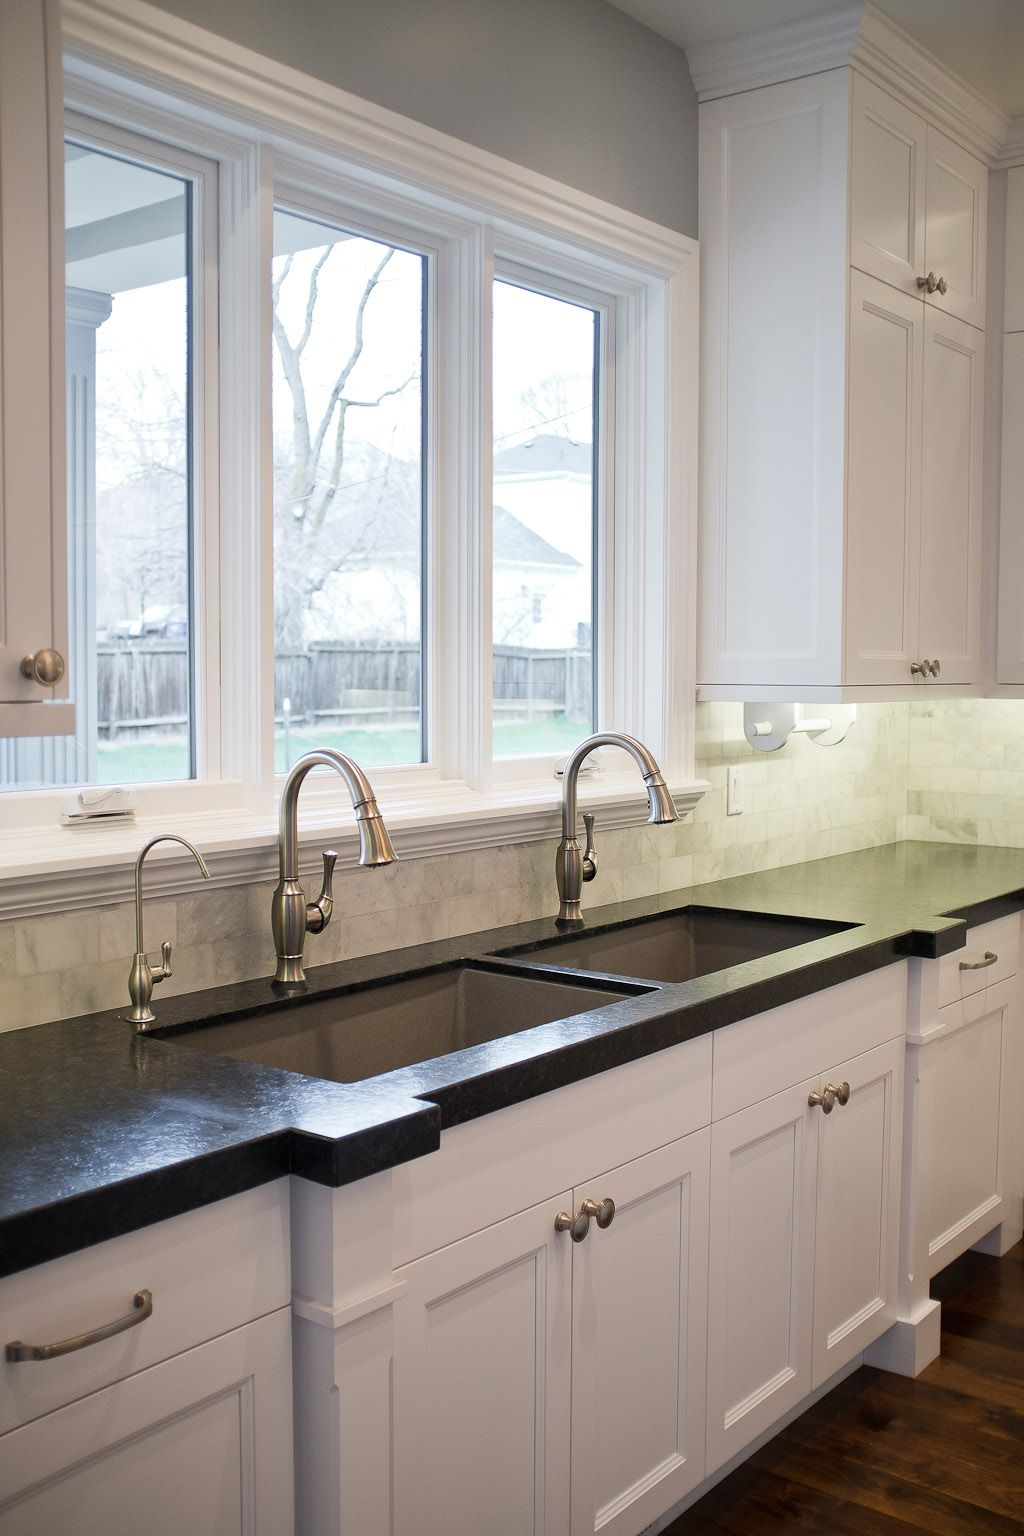 Cameo Homes Two Sinks Better Than One